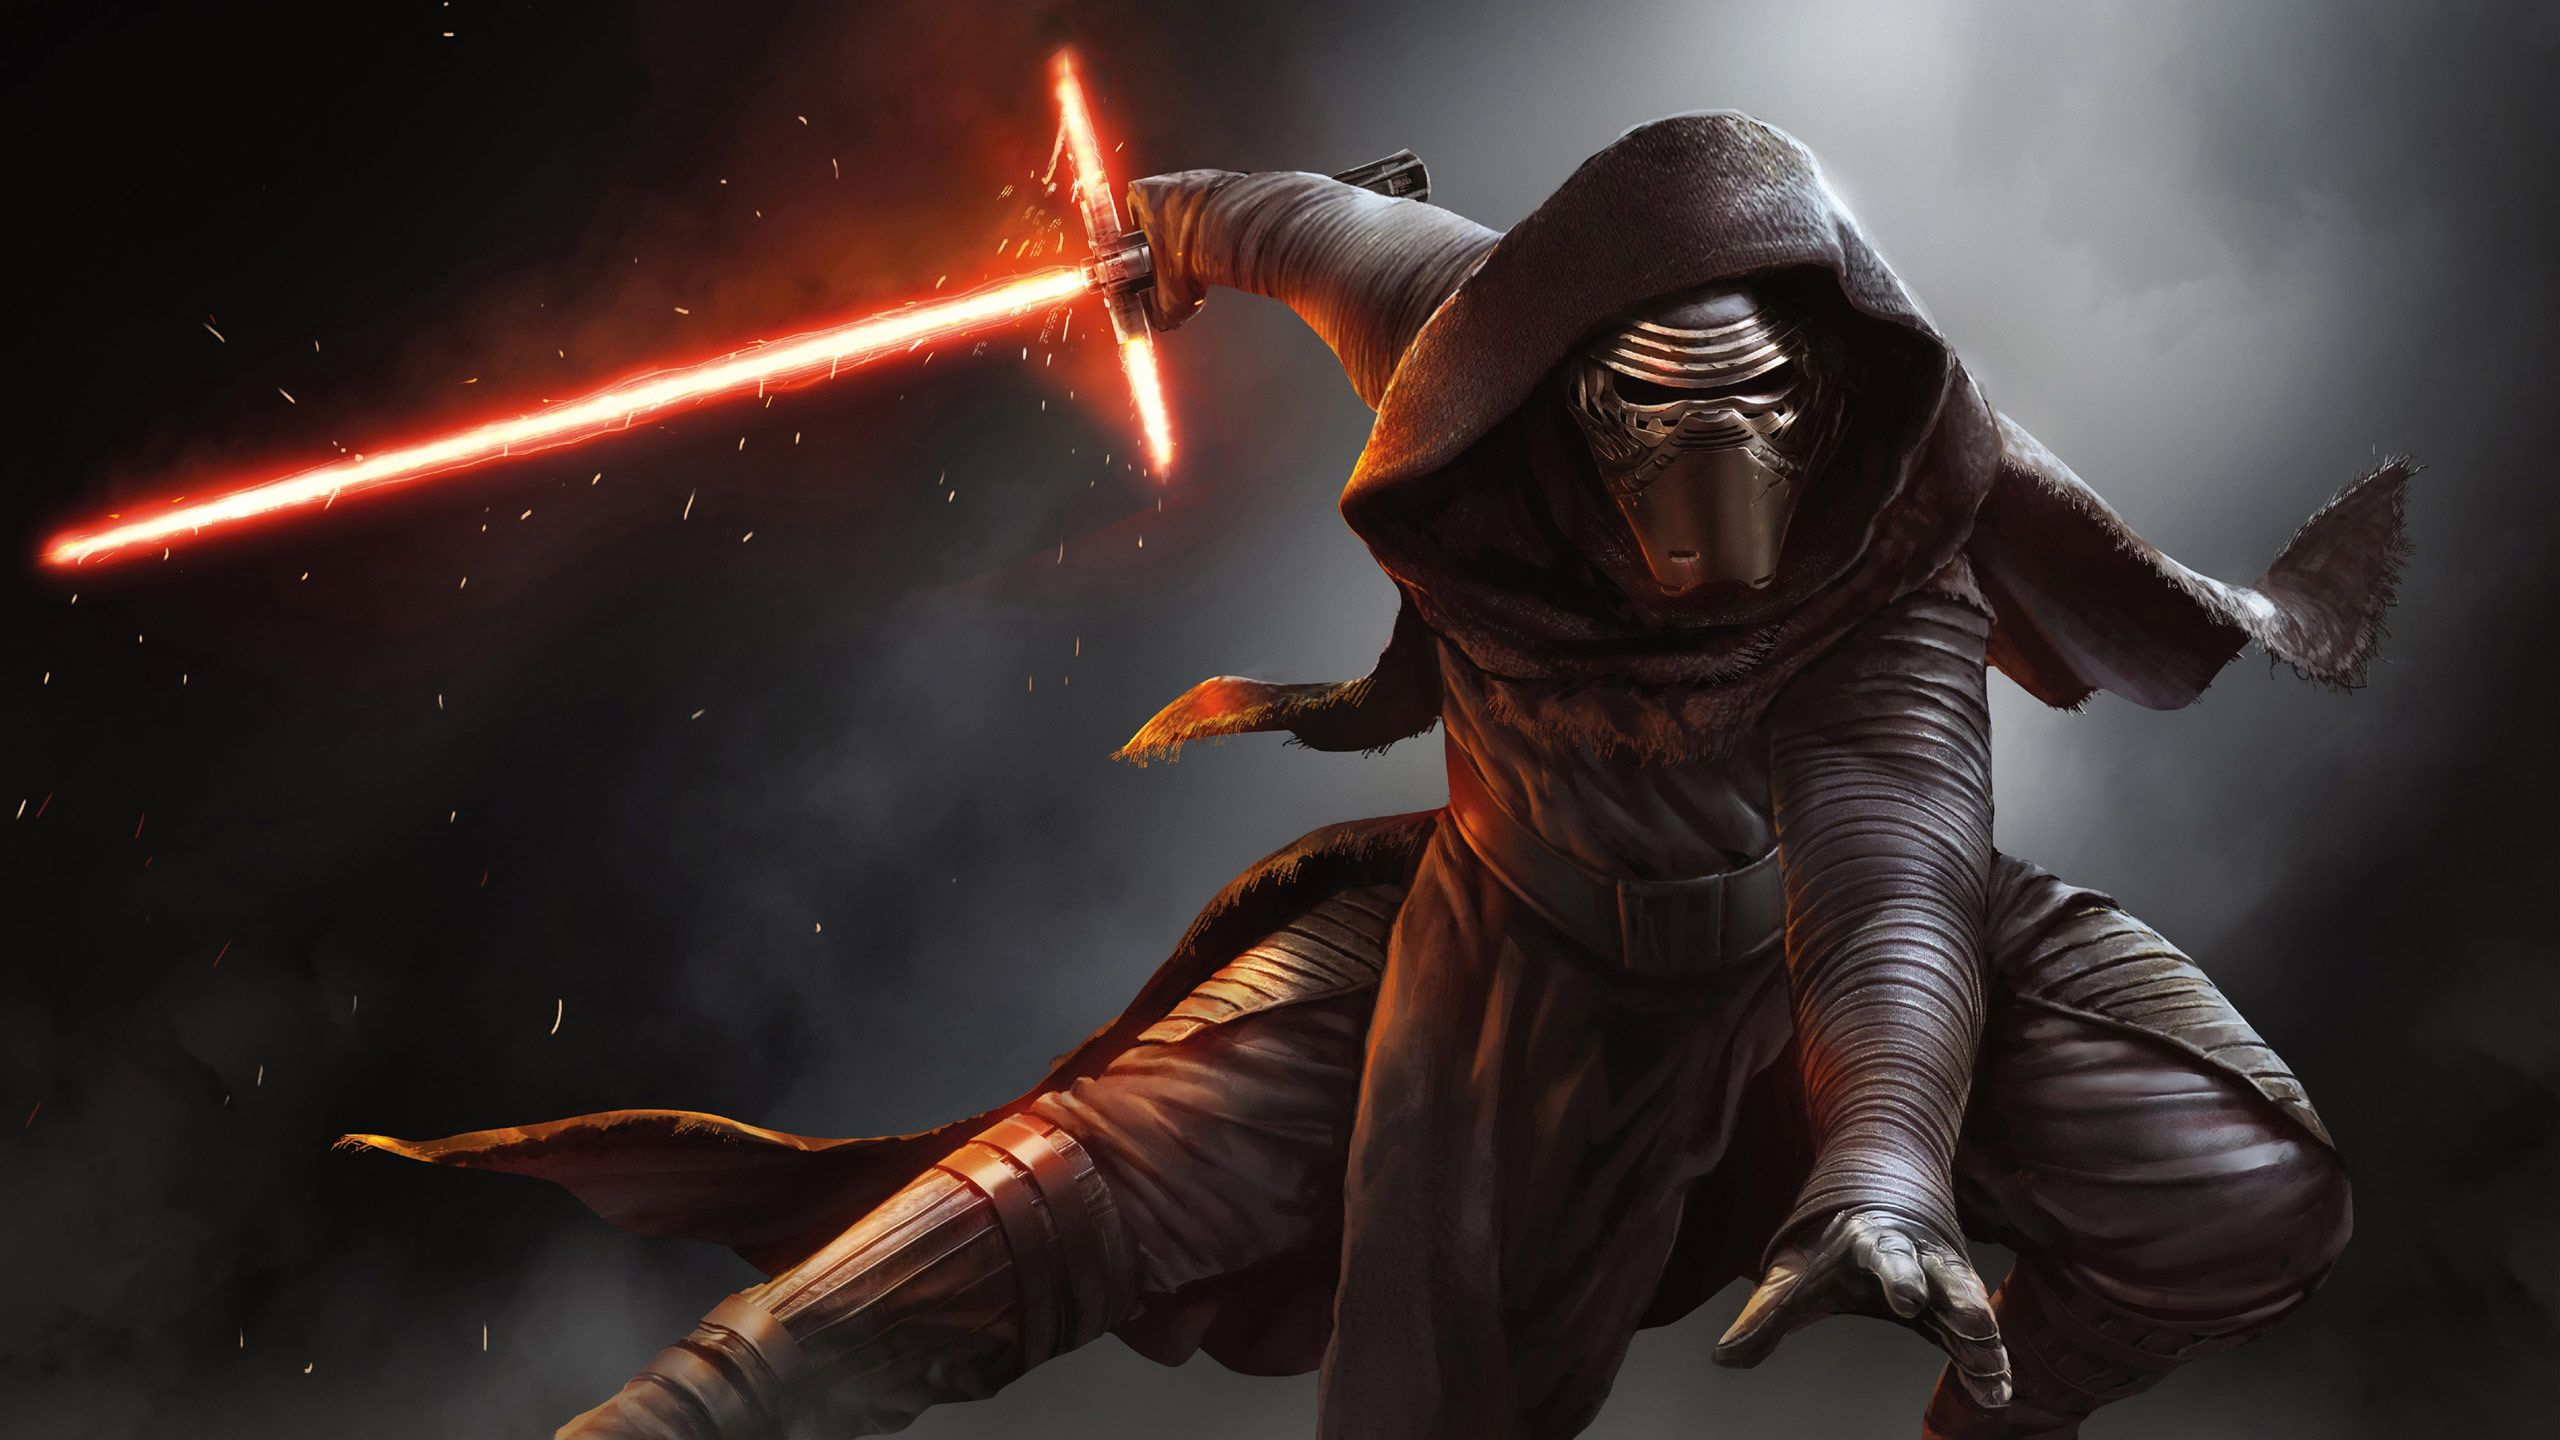 Kylo Ren Star Wars Movie 4k Free Computer Desktop Hd Wallpapers Pictures Images Star Wars Kylo Ren Ren Star Wars Star Wars Wallpaper